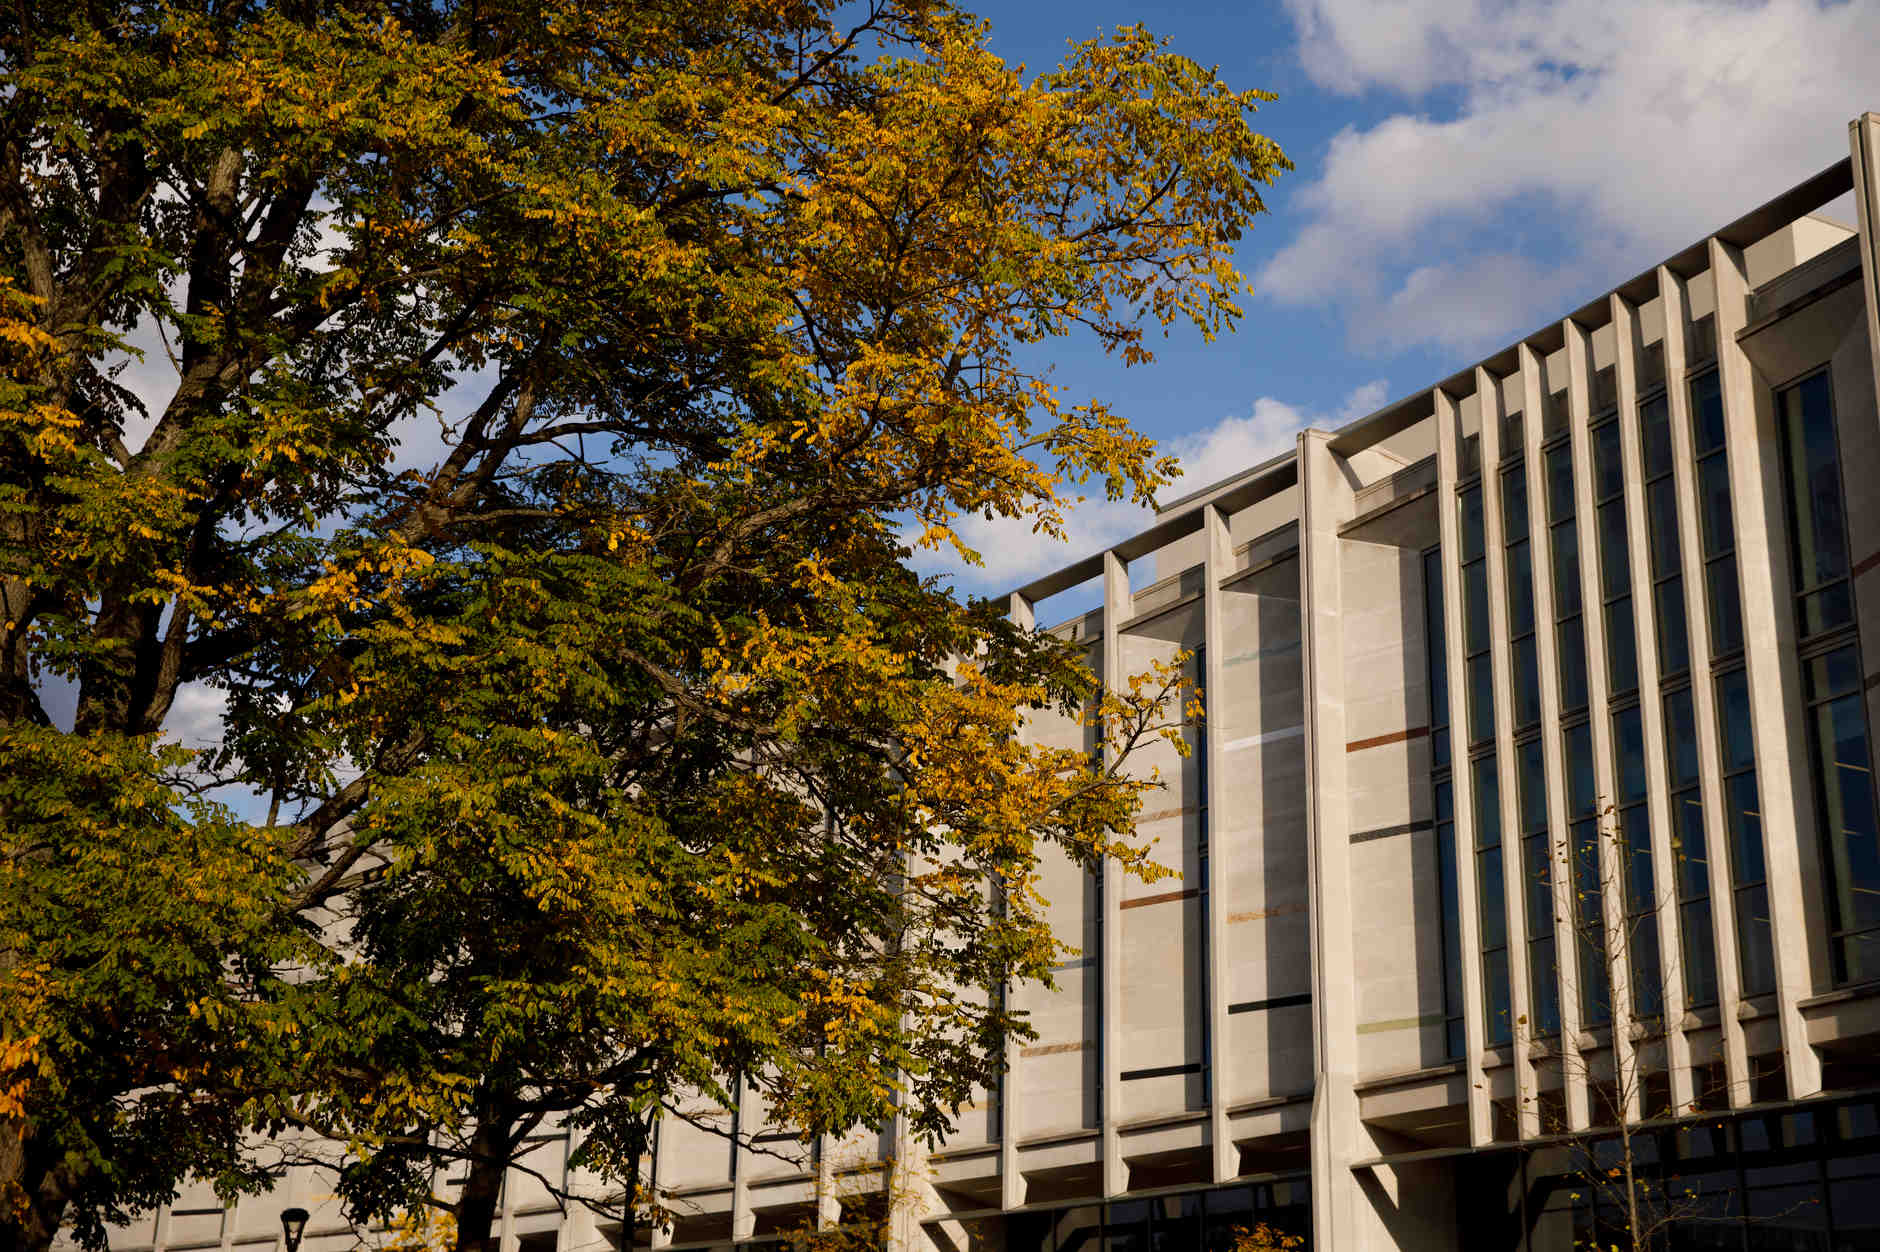 The Hamilton Lugar School of Global and International Studies Building is pictured on a fall day at IU Bloomington on Tuesday, Oct. 22, 2019. (James Brosher/Indiana University)